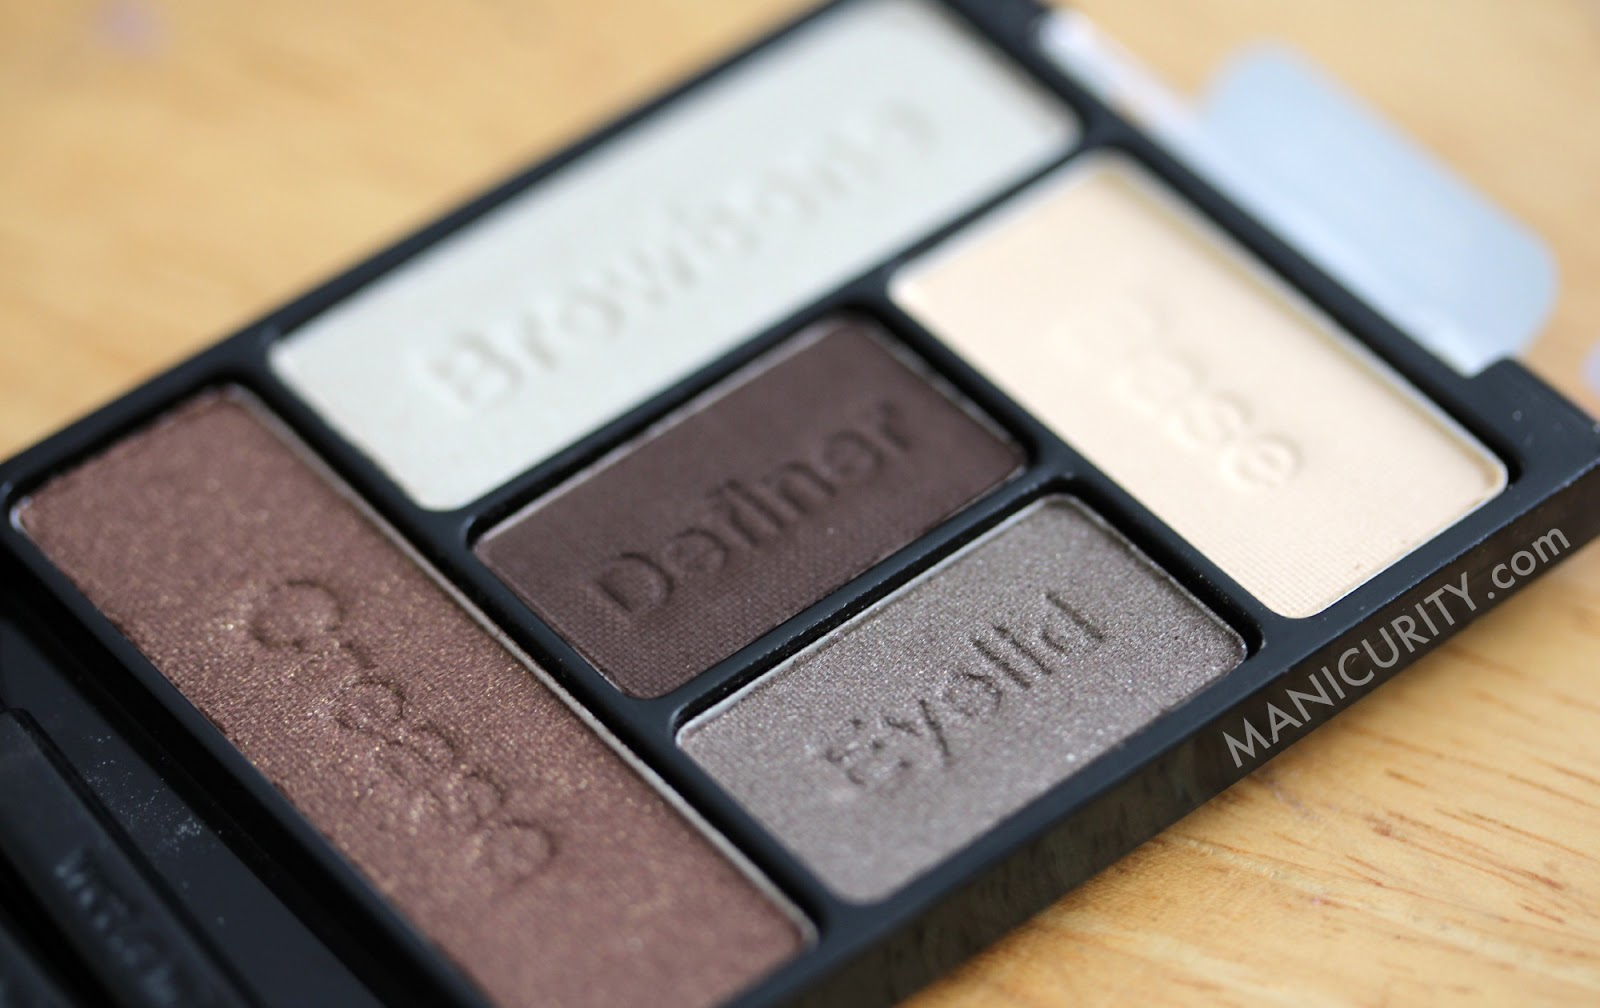 Wet N Wild 5pan Color Icon Eyeshadow Palette In 'the Naked Truth'  Manicurity: